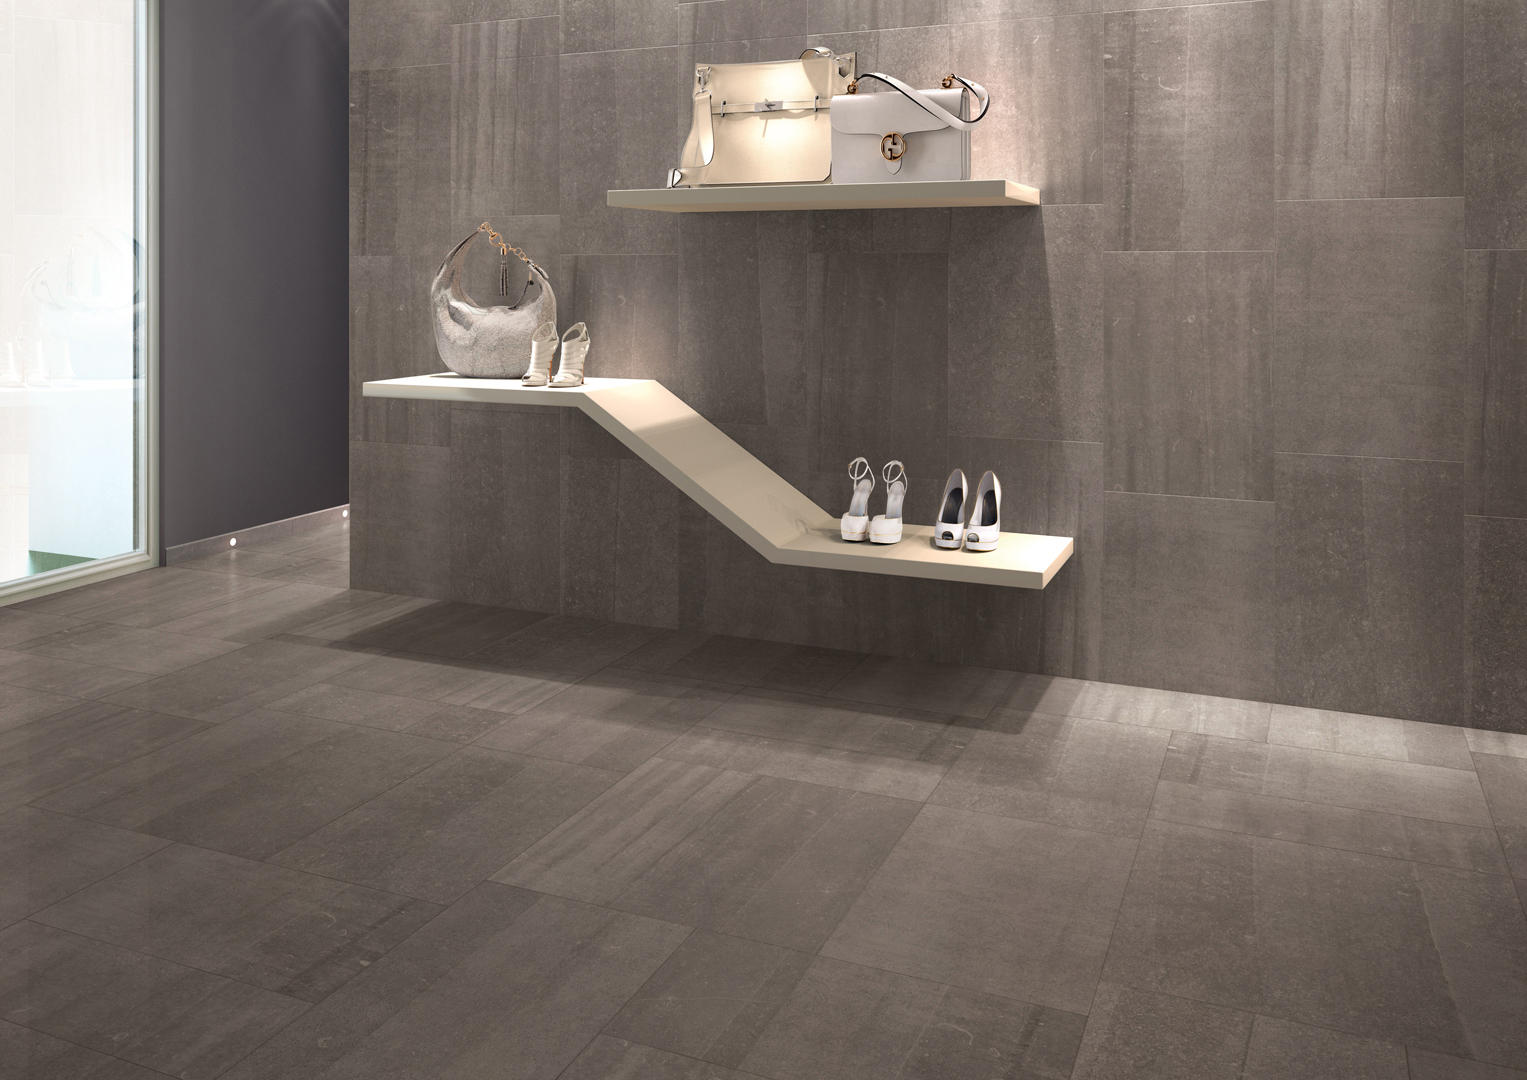 Back anthracite piastrelle ceramica keope architonic